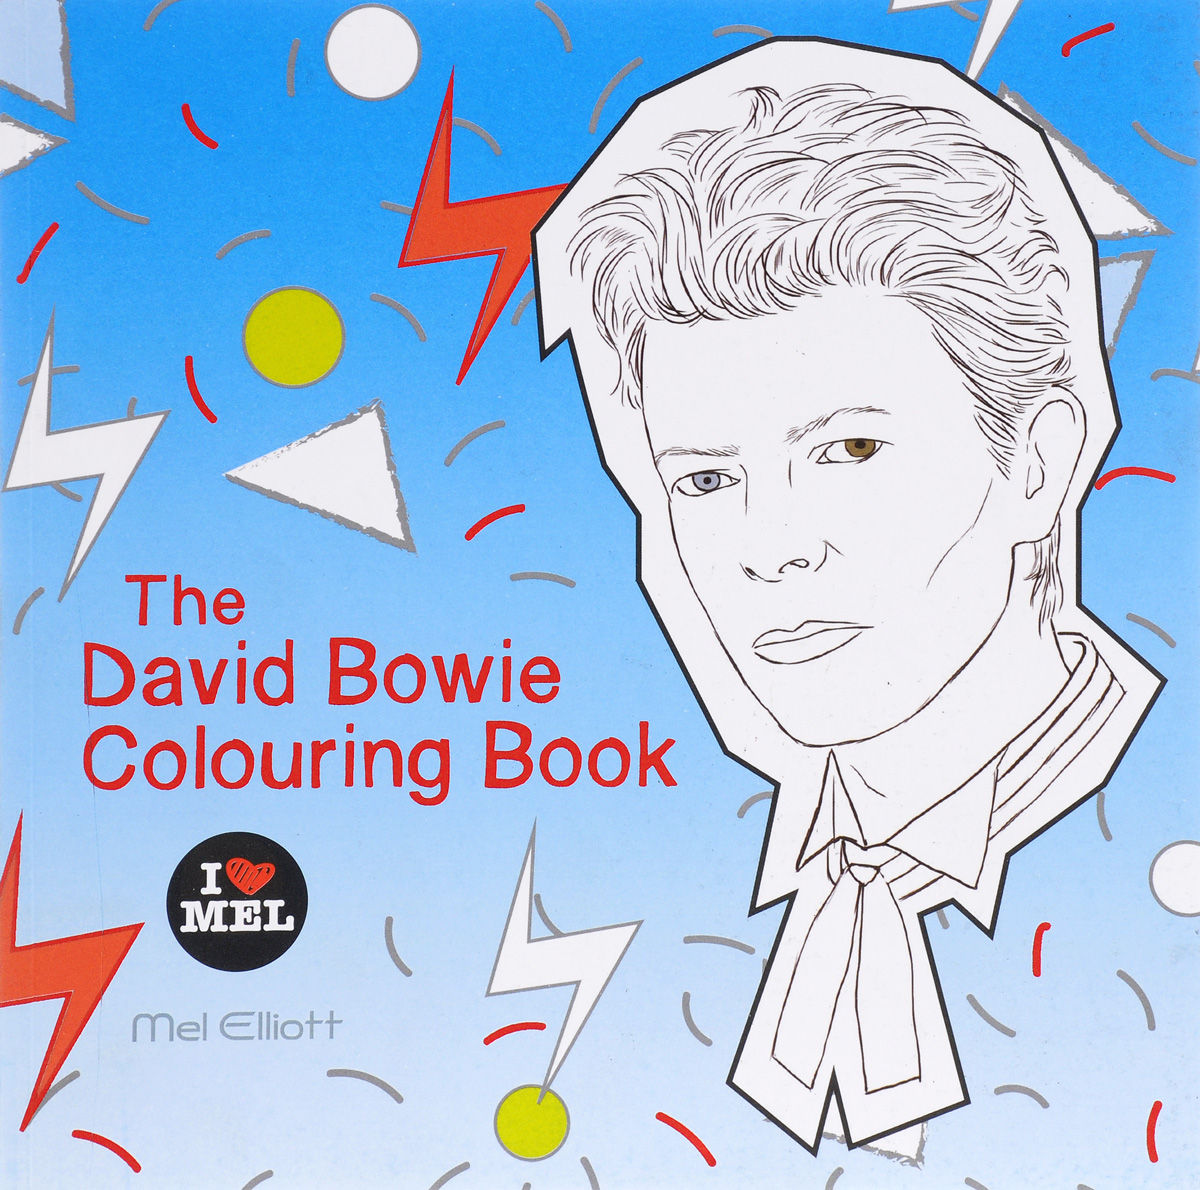 The David Bowie Colouring Book 3 7v lithium polymer battery 353560 830mah mp4 mp5 psp consoles gps navigator